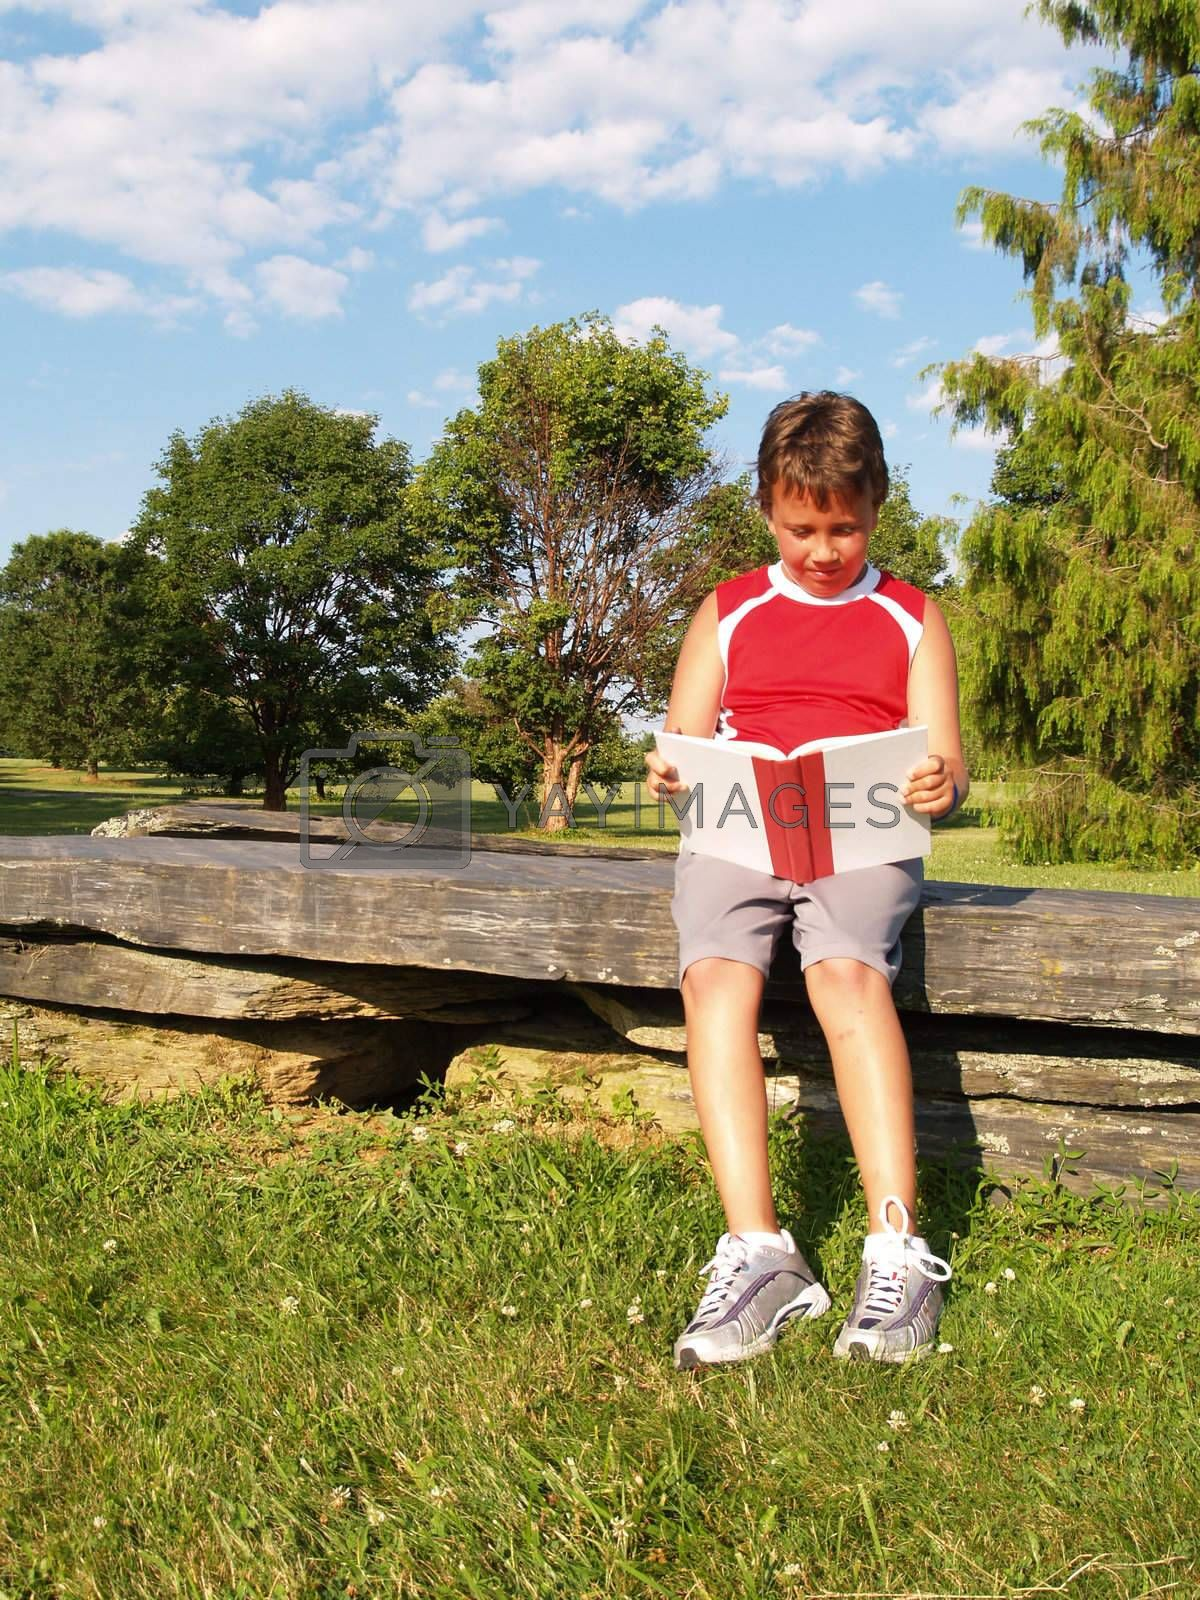 young boy reading a book in a park setting